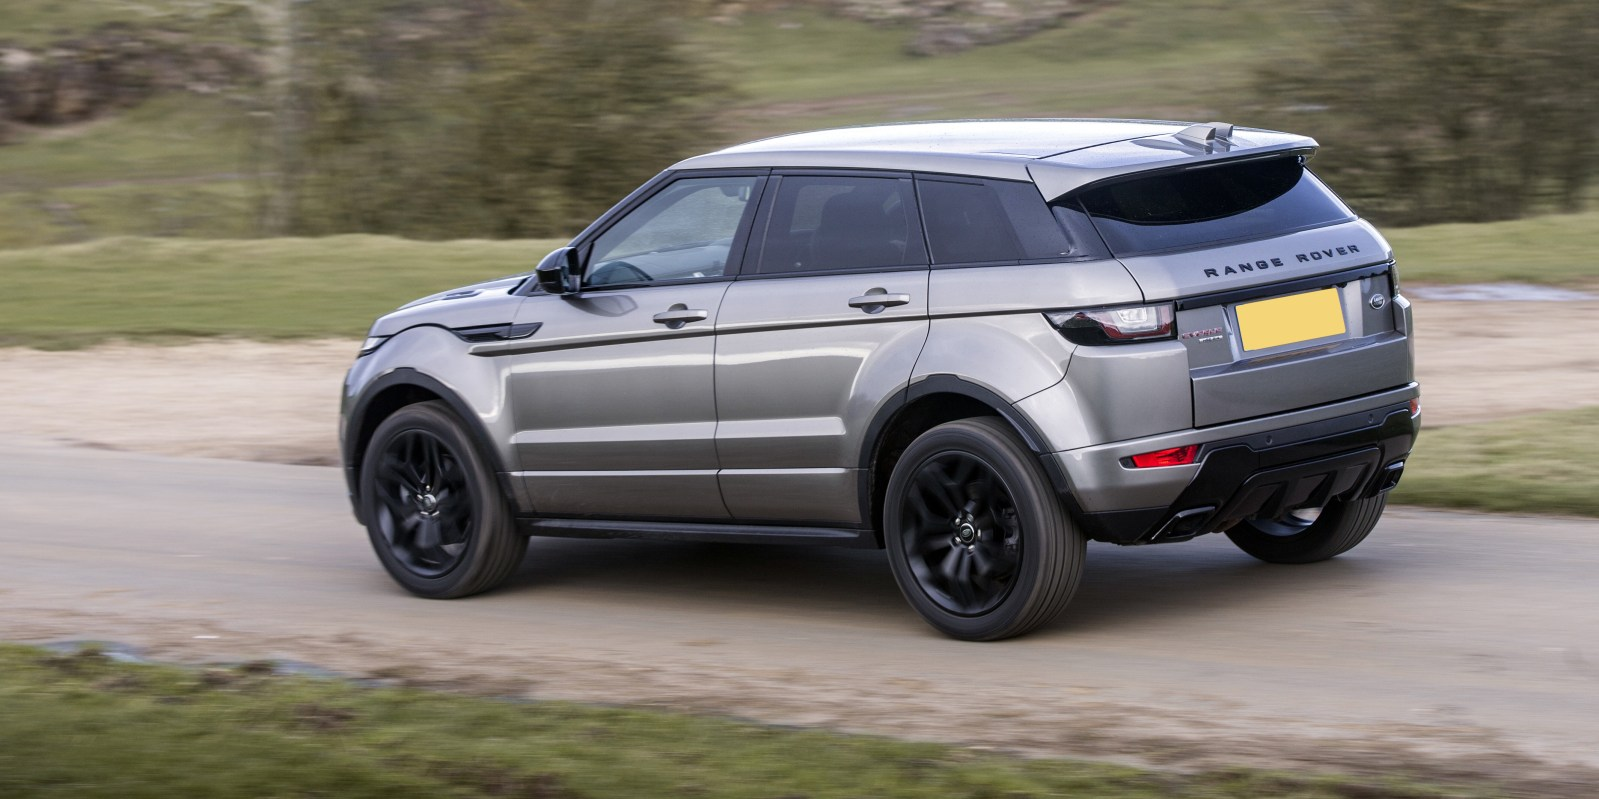 Land Rover Vs Range Rover Range Rover Evoque Specifications Carwow